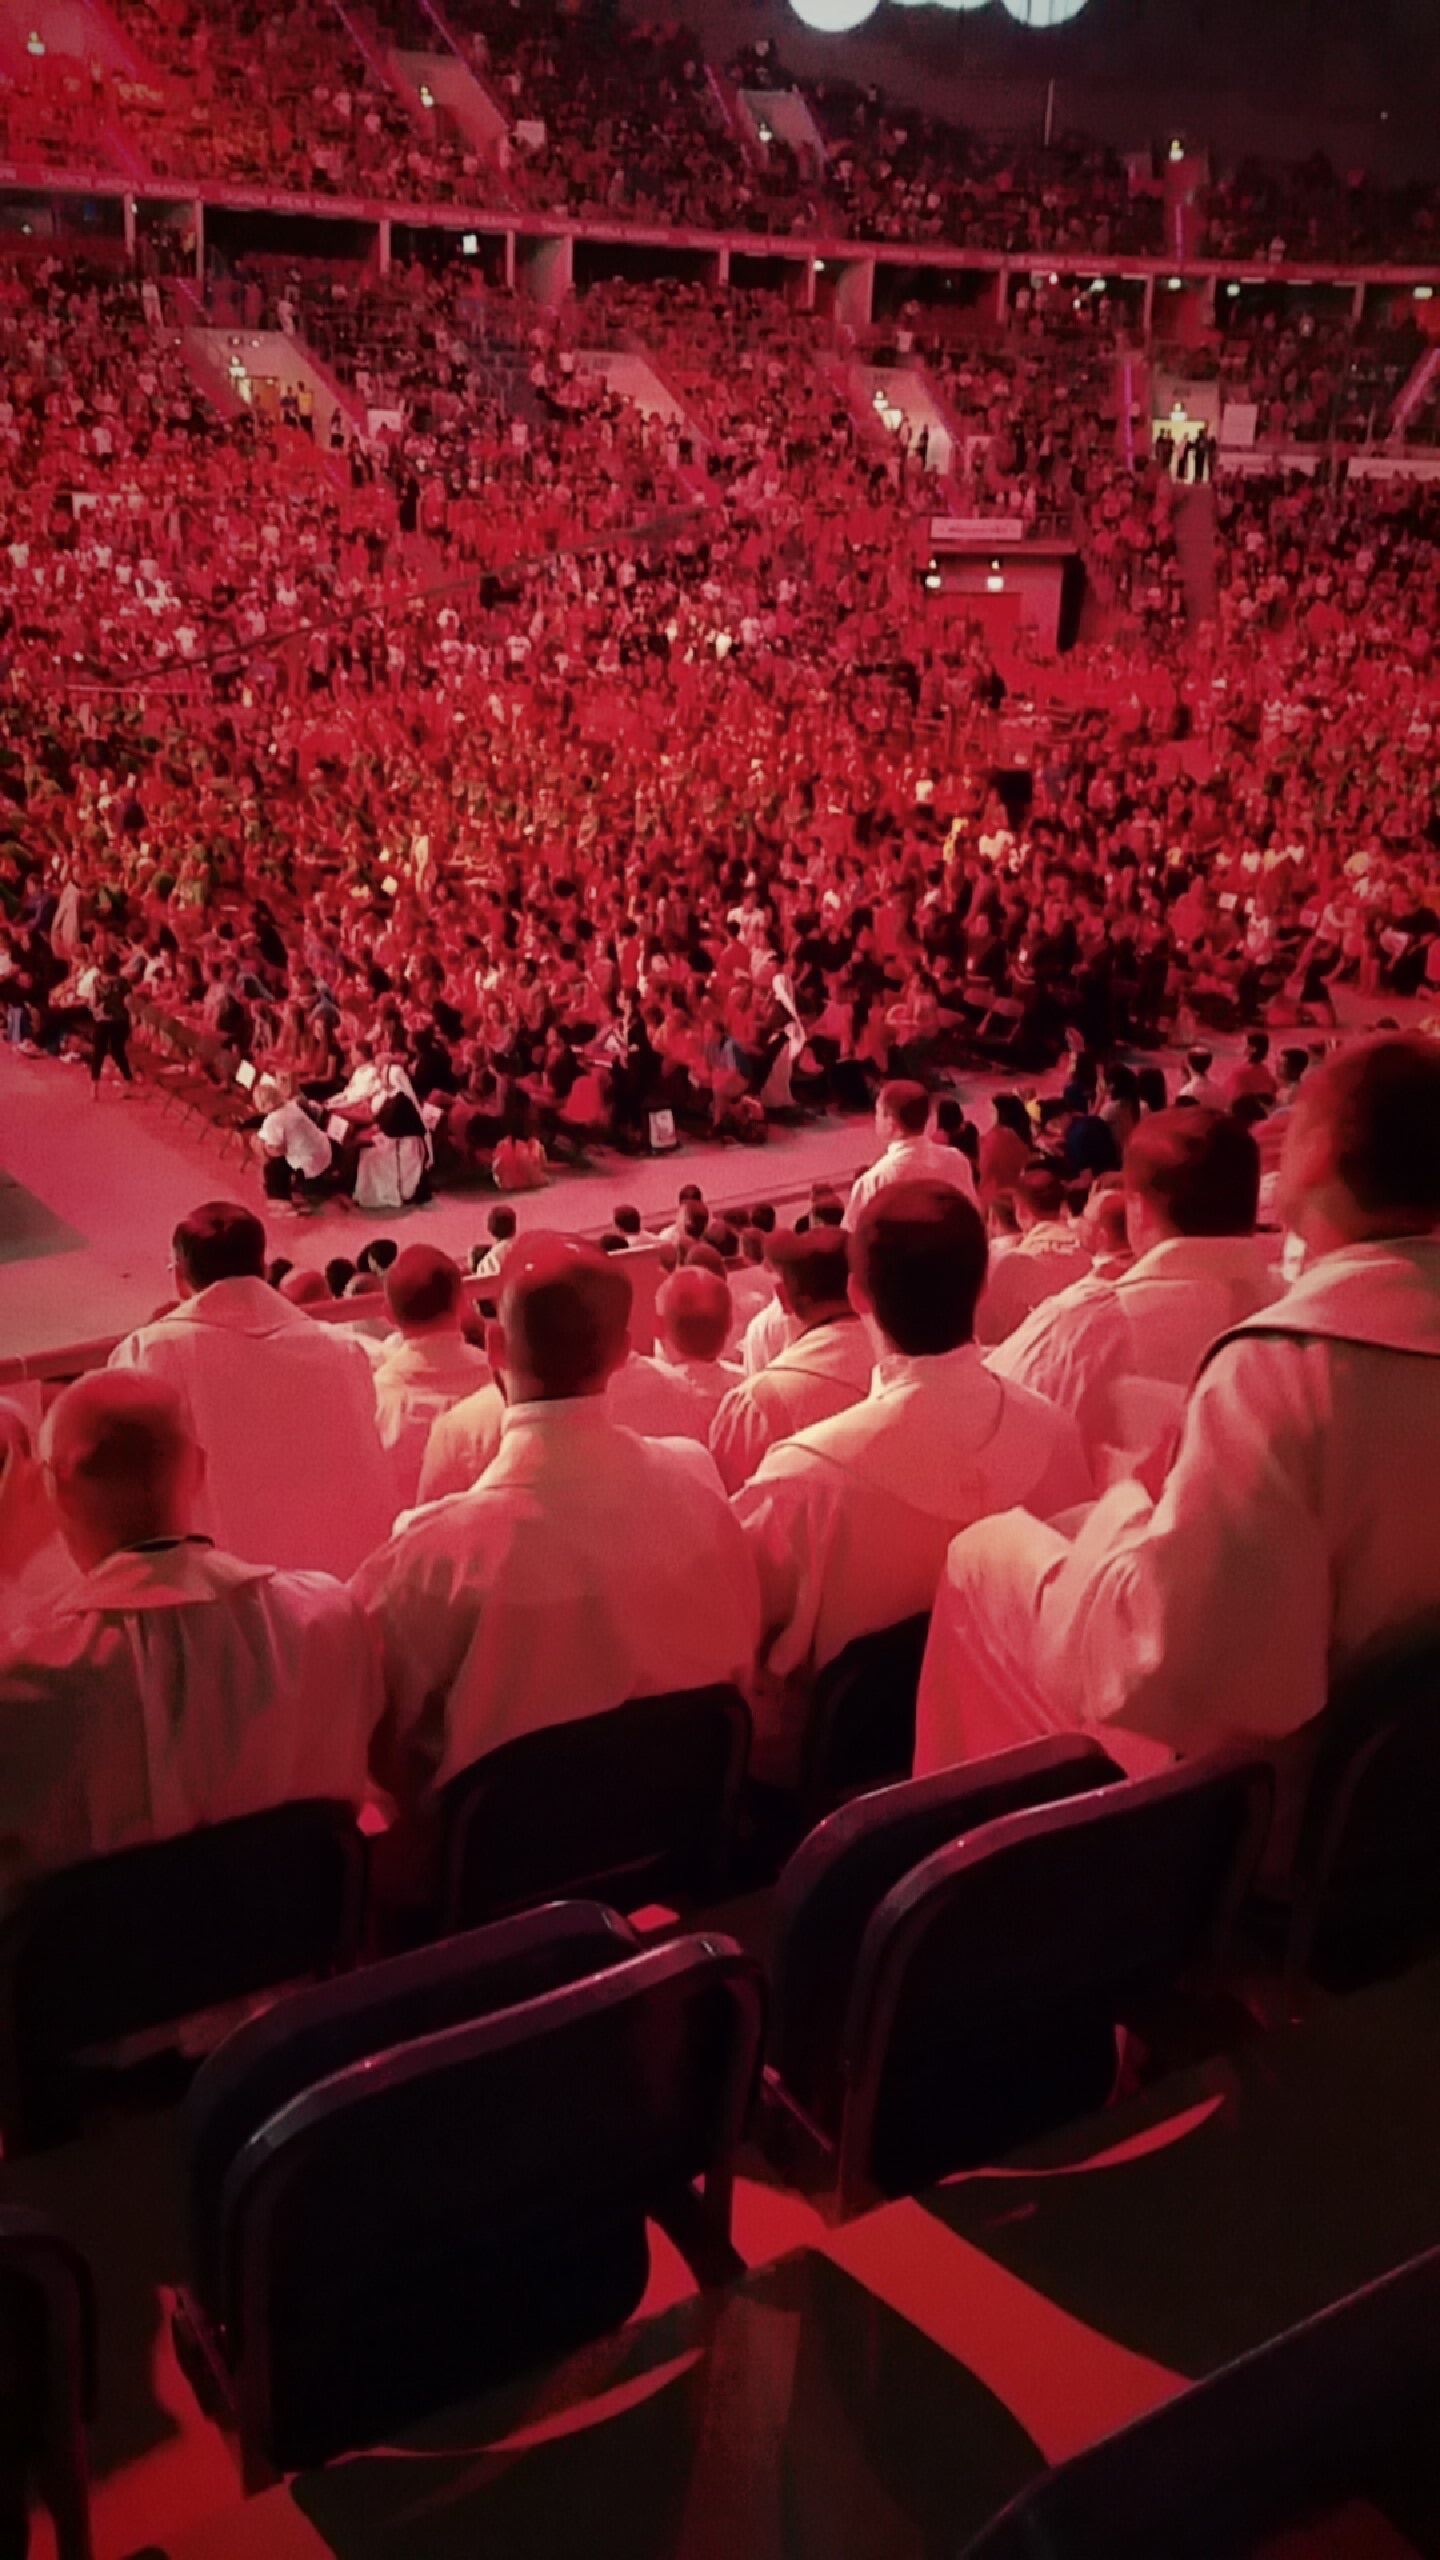 https://i1.wp.com/troubadour.francis.edu/wp-content/uploads/2016/07/Fraley-blog-5-pic-WYD-crowd.jpg